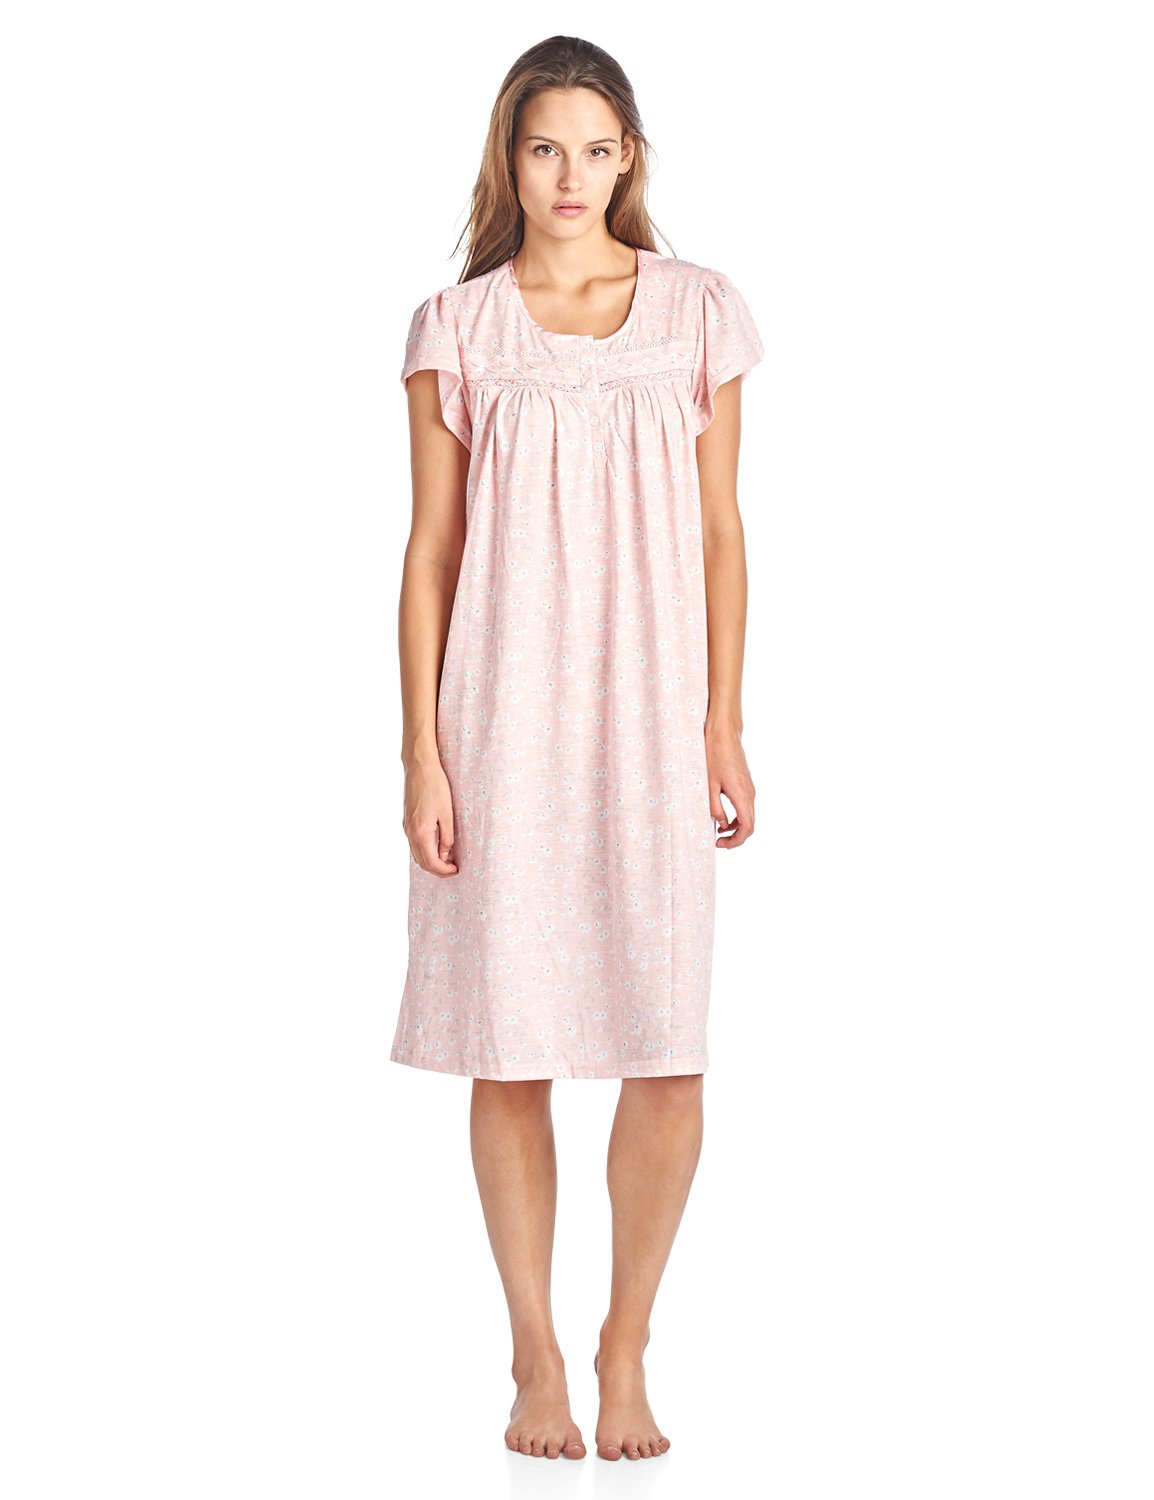 Casual Nights Women's Short Sleeve Floral Lace Nightgown - Pink - Large